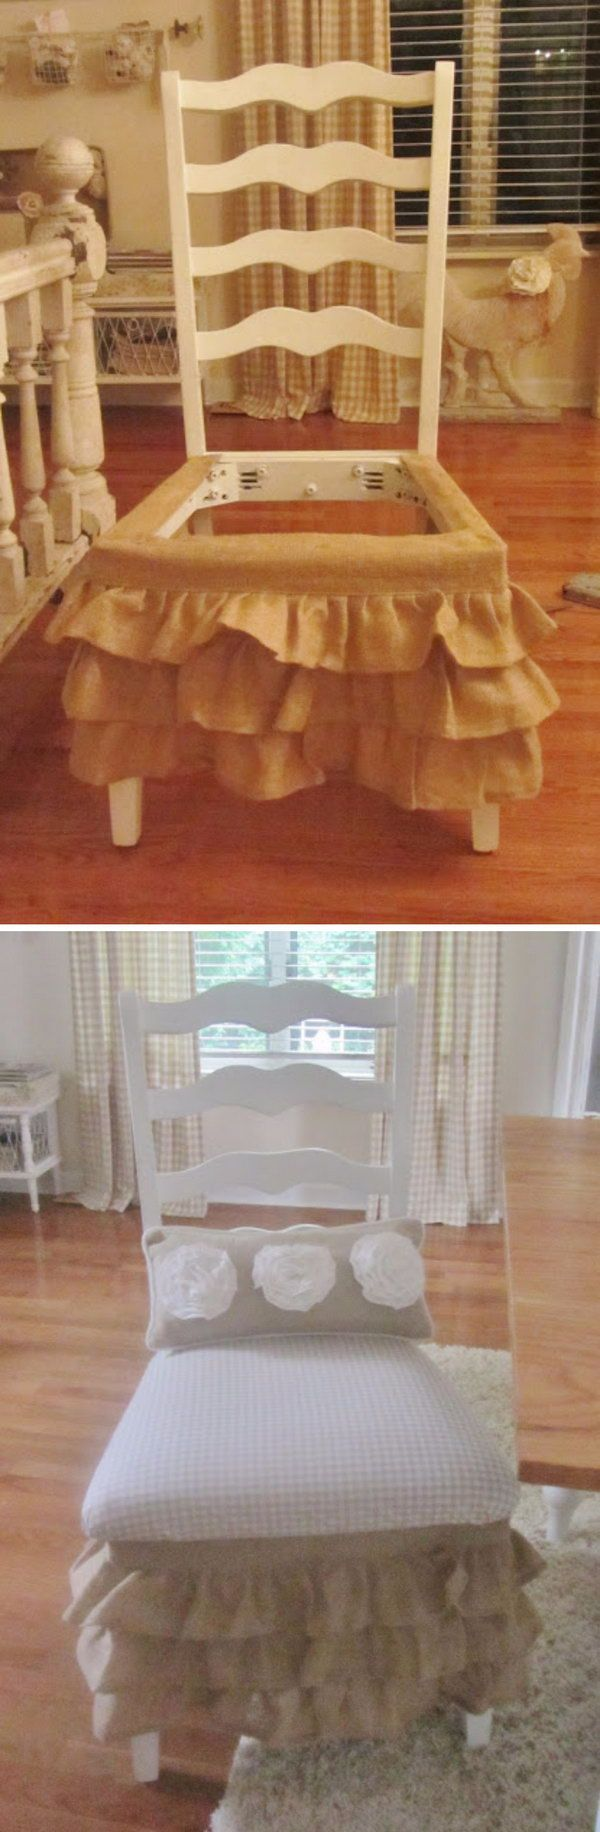 chair covers for plastic chairs weddings cotton recliner 25+ best ideas about burlap on pinterest | sashes, wedding decorations ...